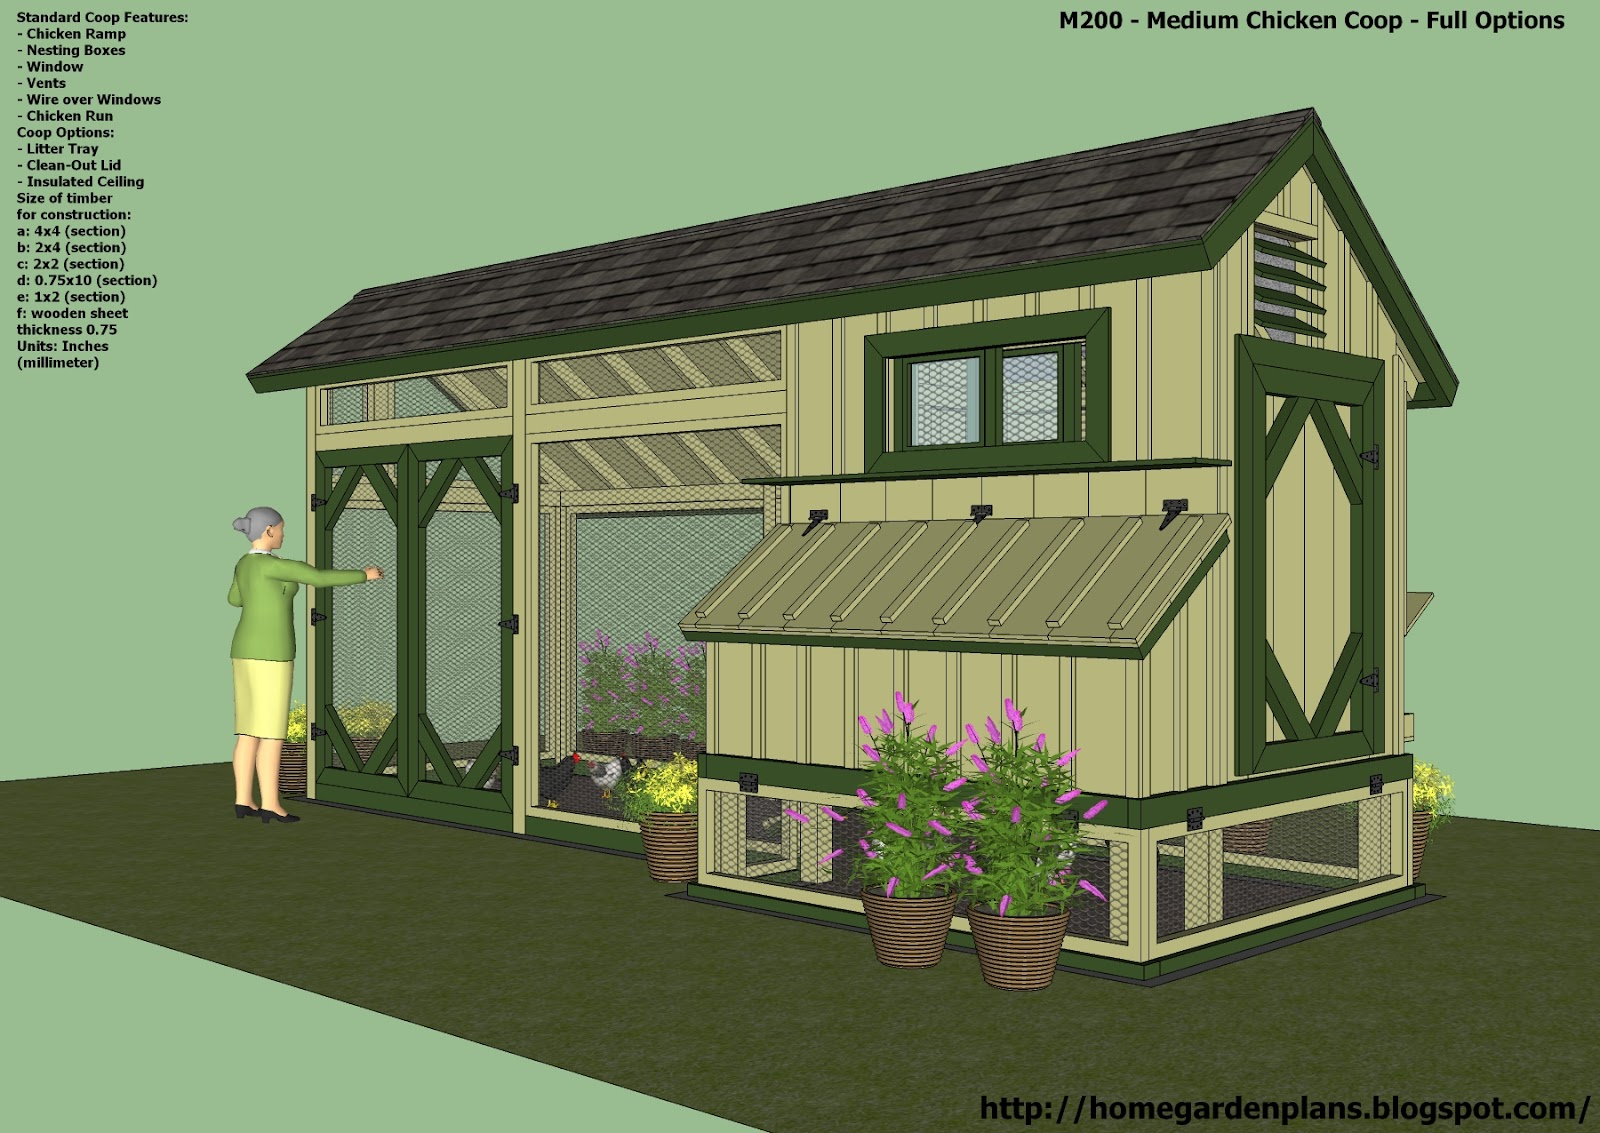 Best chicken coops must see build small chicken coop for Free chicken coop designs plans